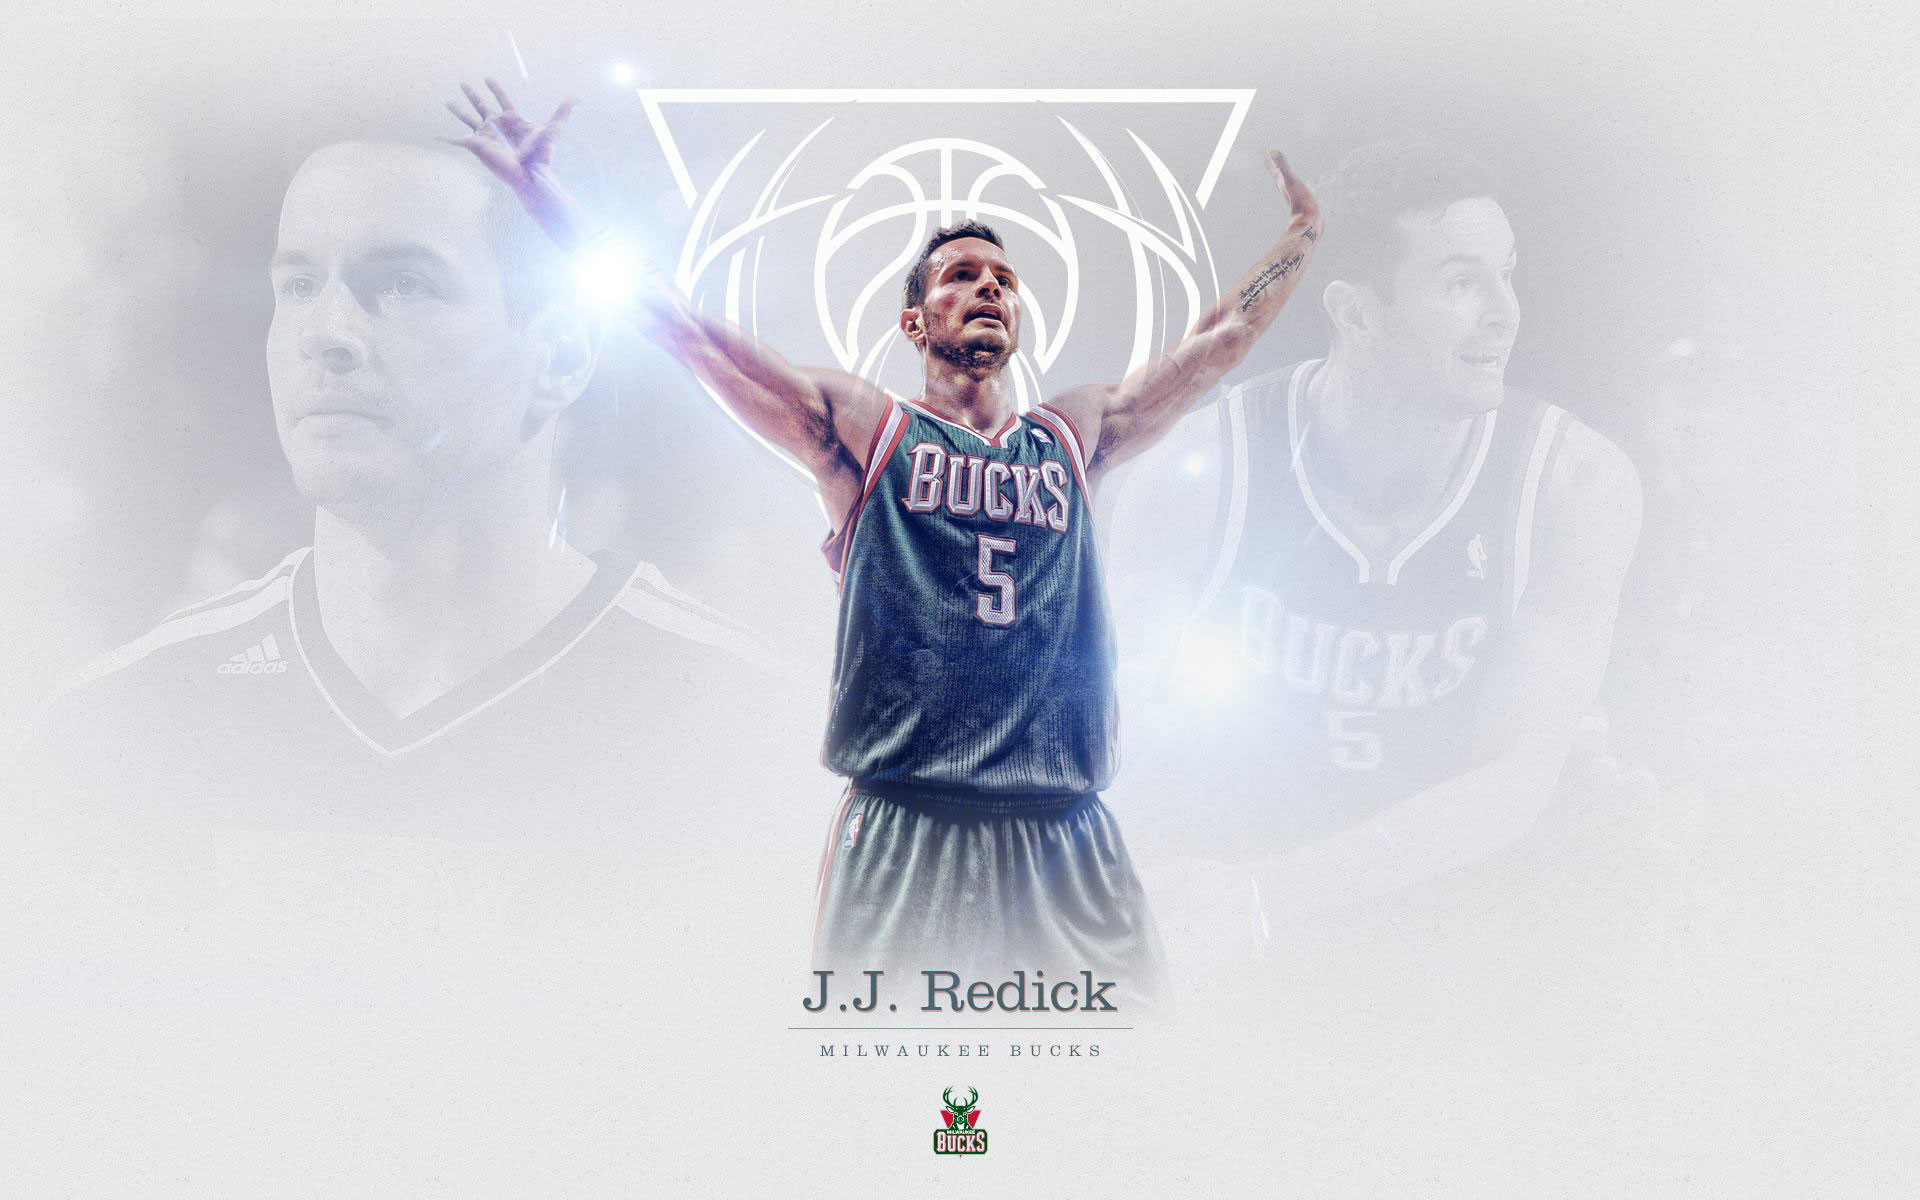 1920x1200 J. J. Redick Bucks  Wallpaper